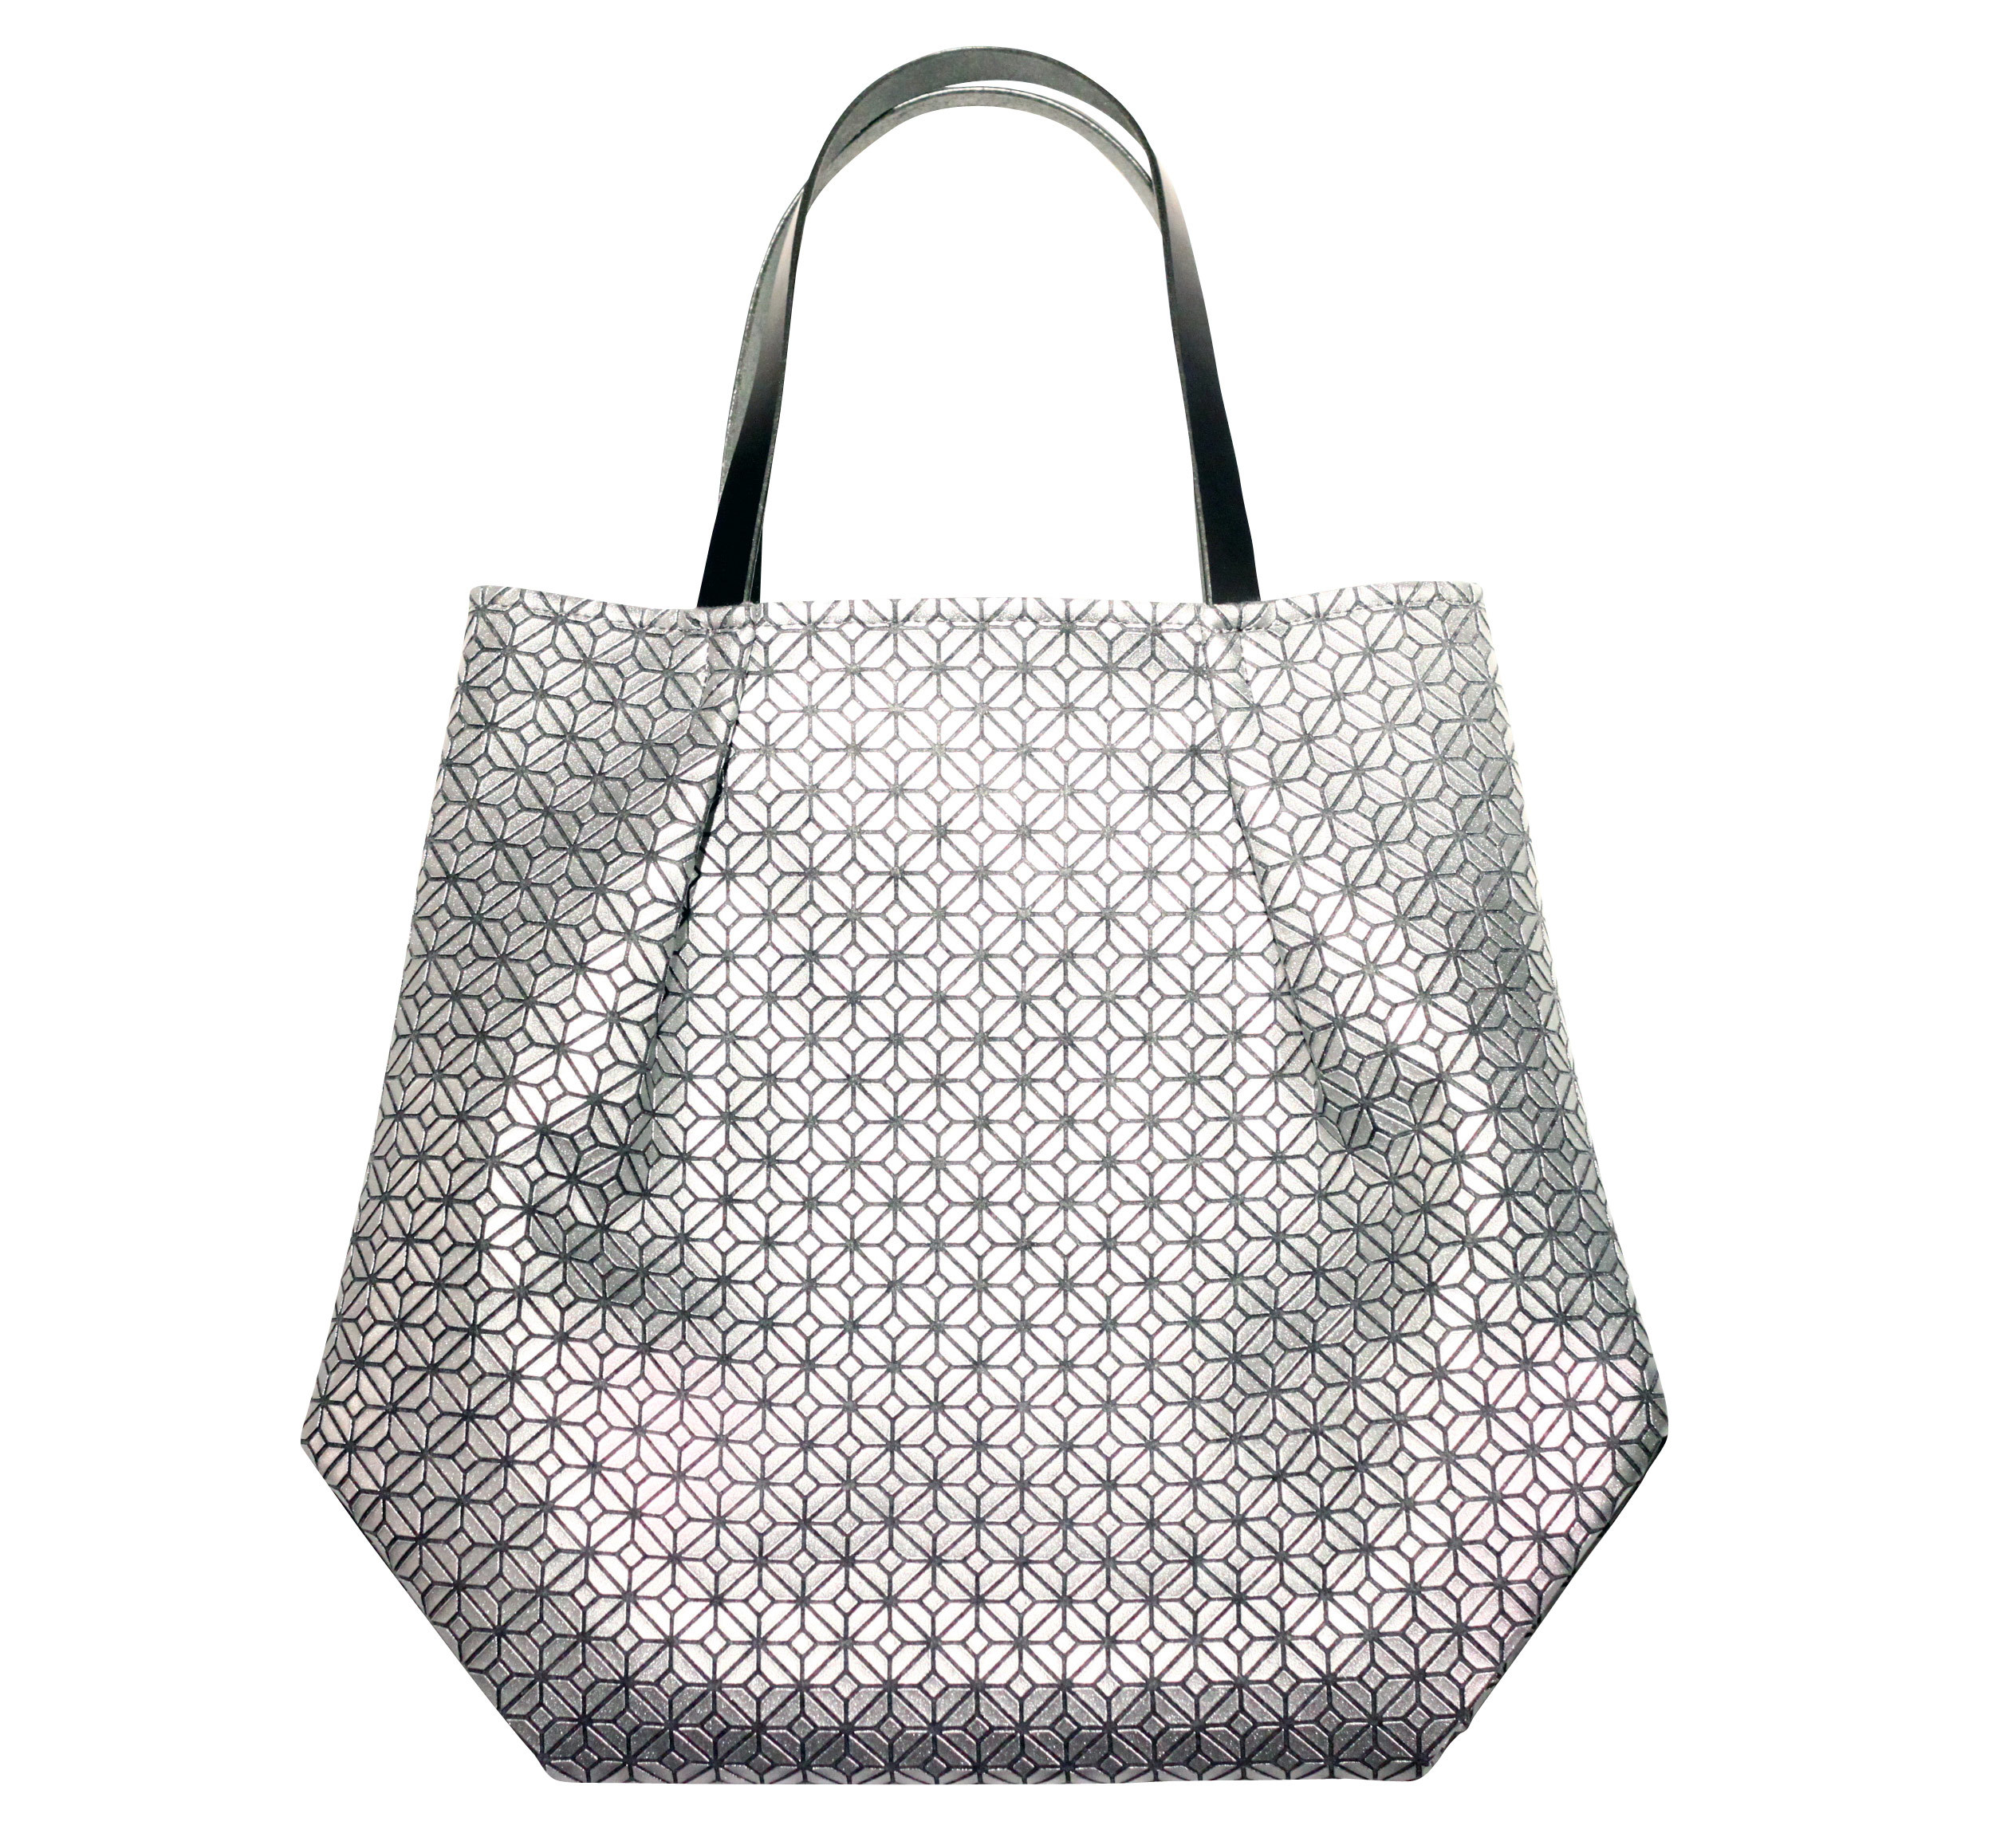 COMMON tote Bag / SILVER GRAY